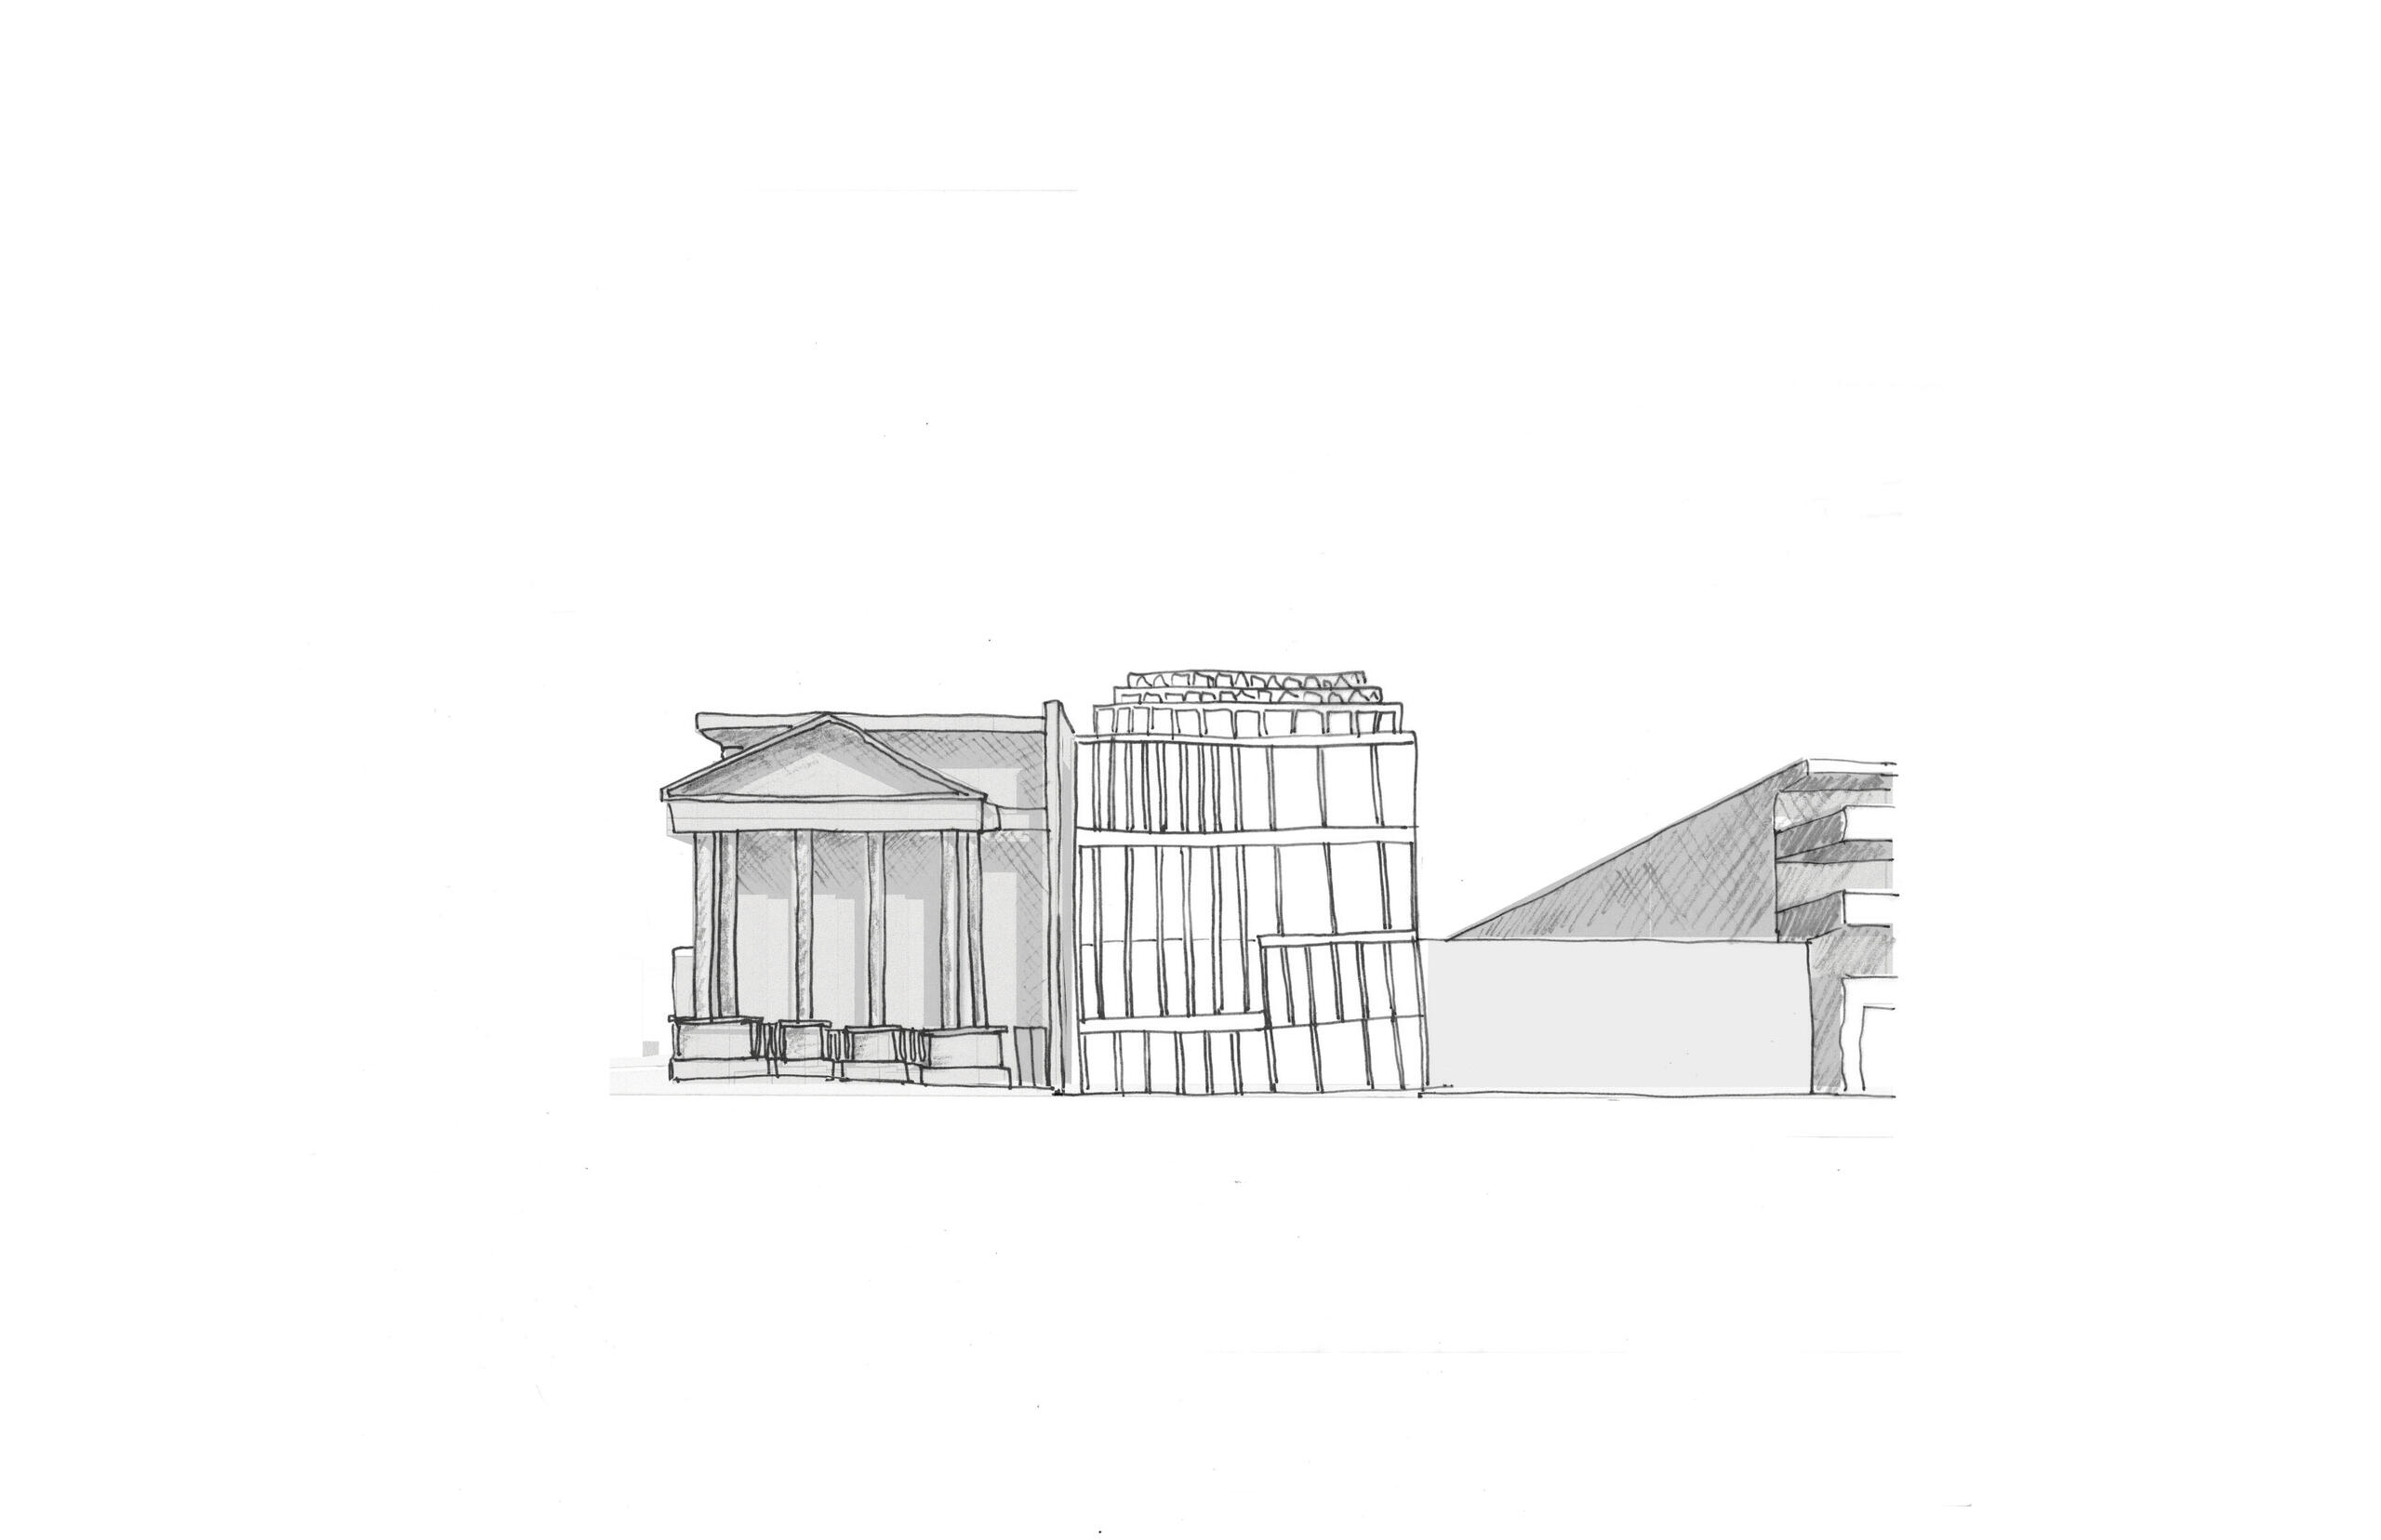 early concept sketch of Biblio showing block patterned facade rather than the current arches